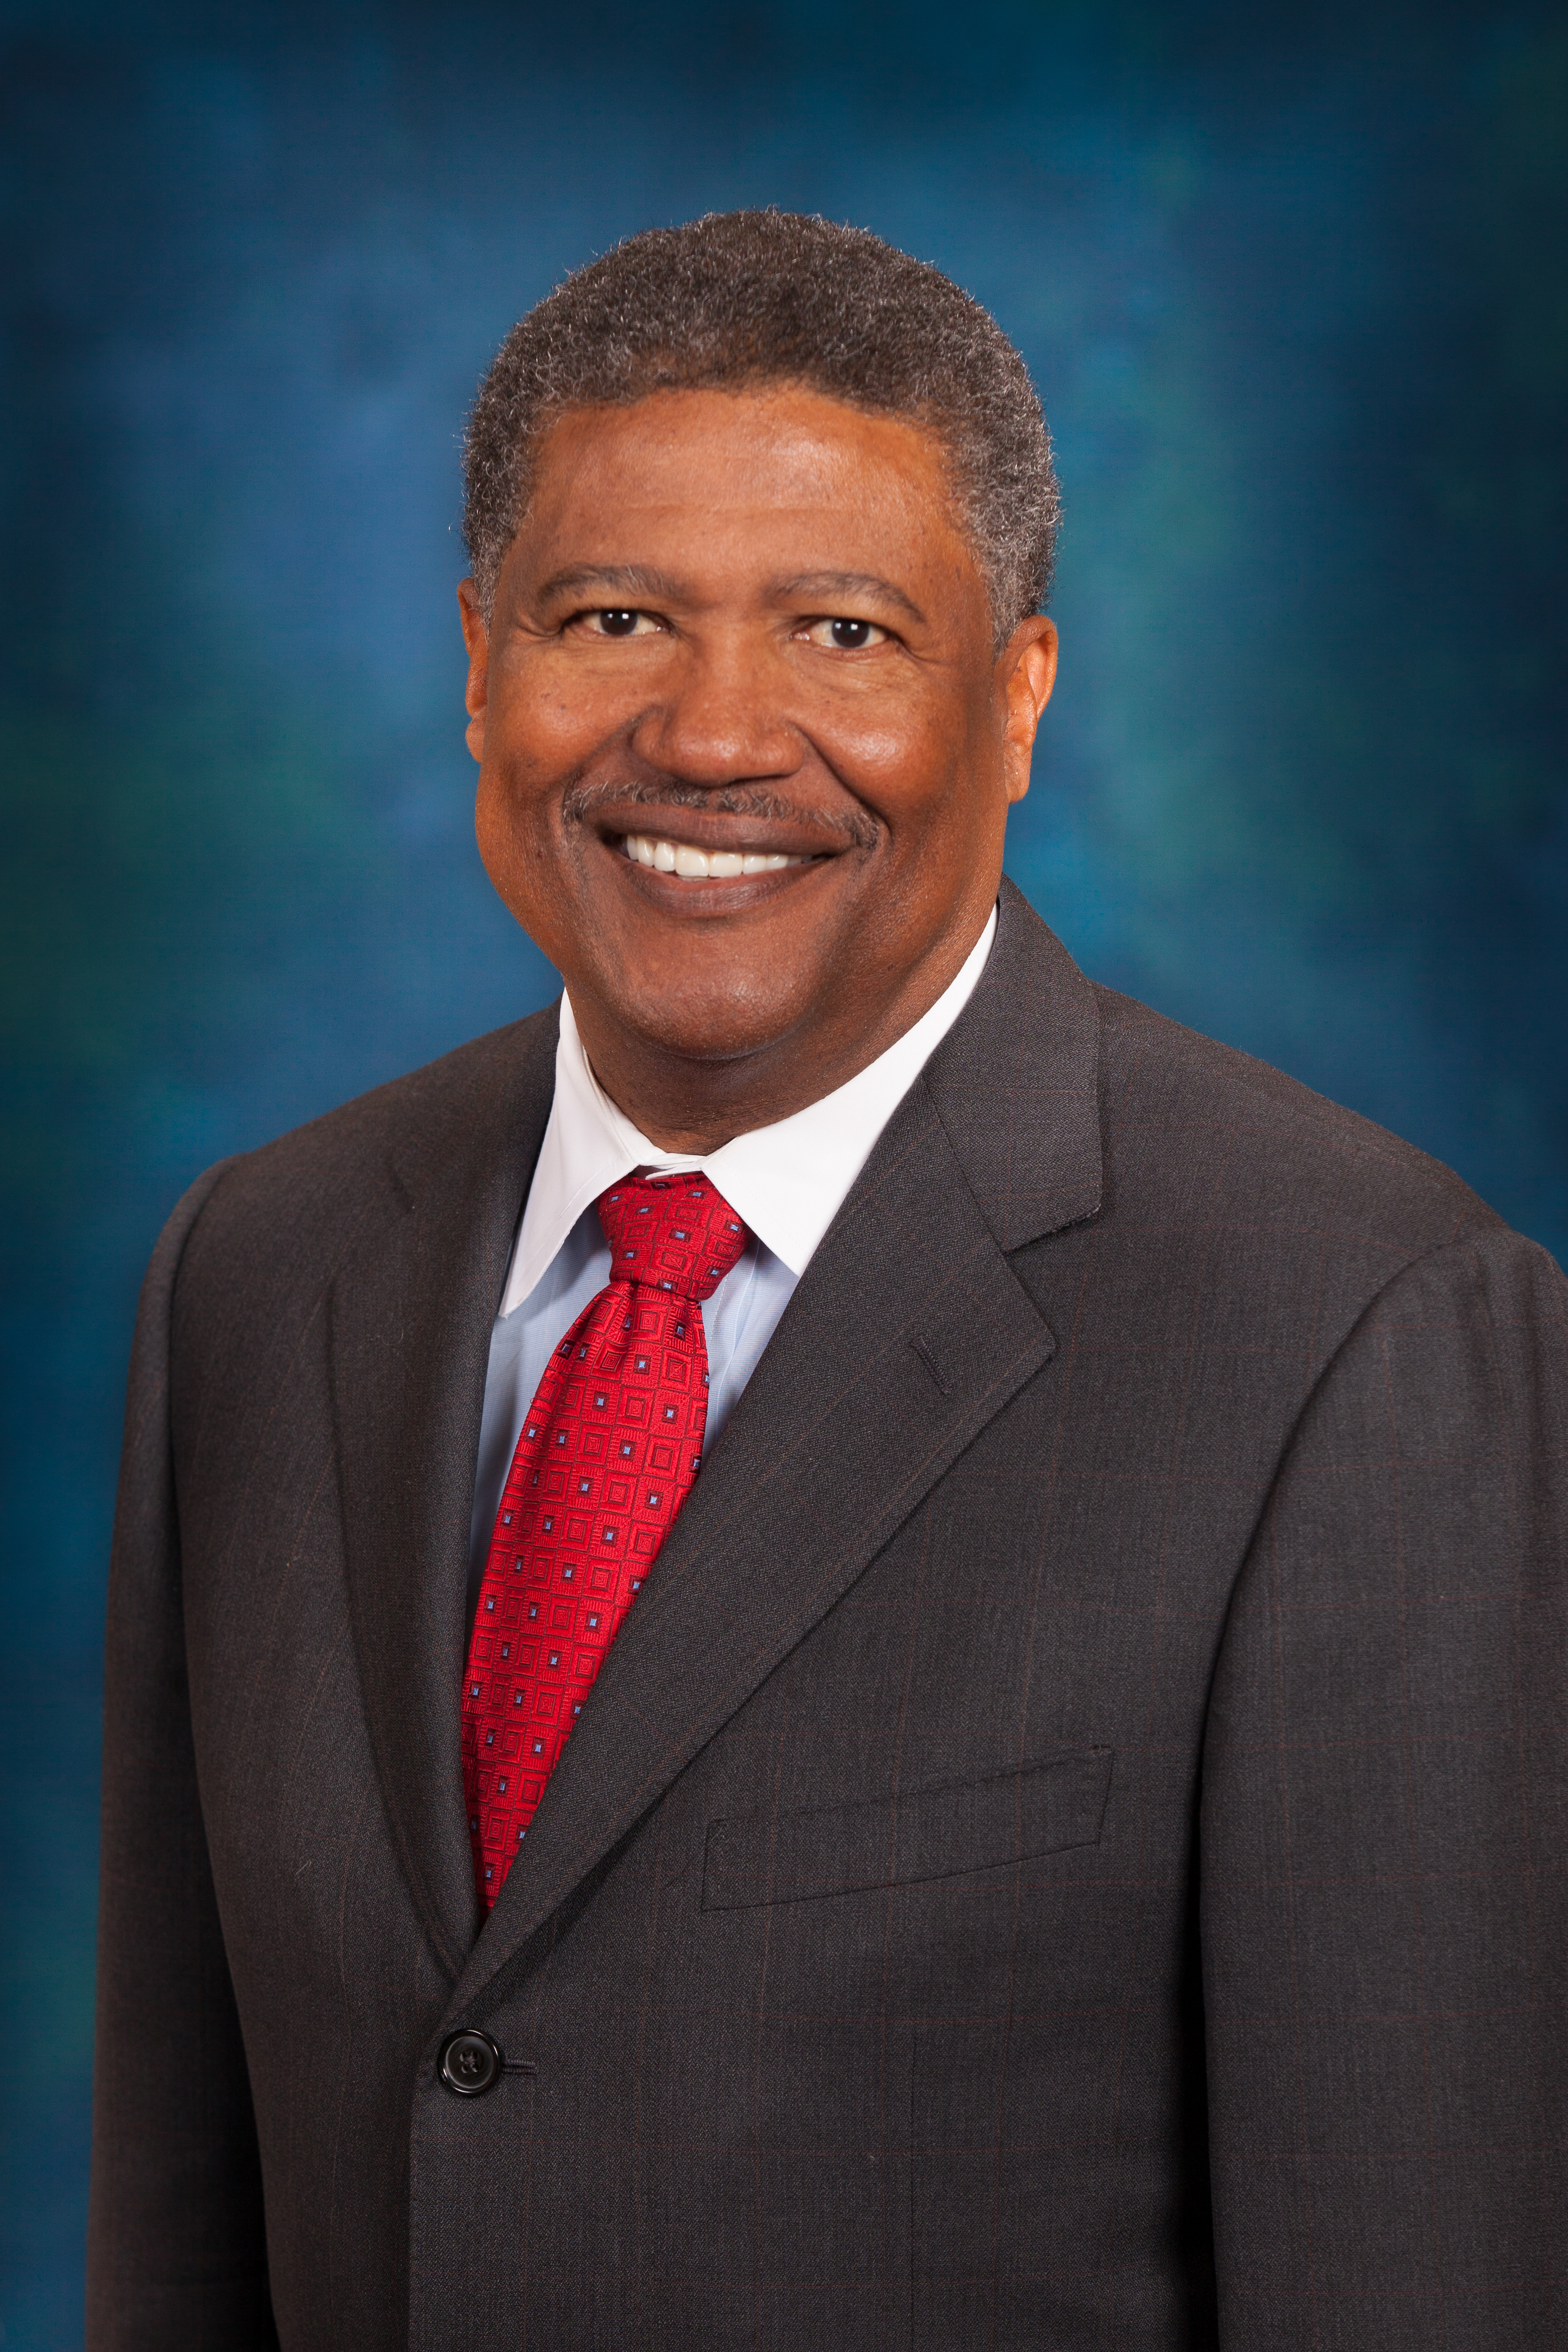 Ray M. Robinson, who has served on Avnet's Board of Directors since 2000, has submitted his resignation. (Photo: Business Wire)